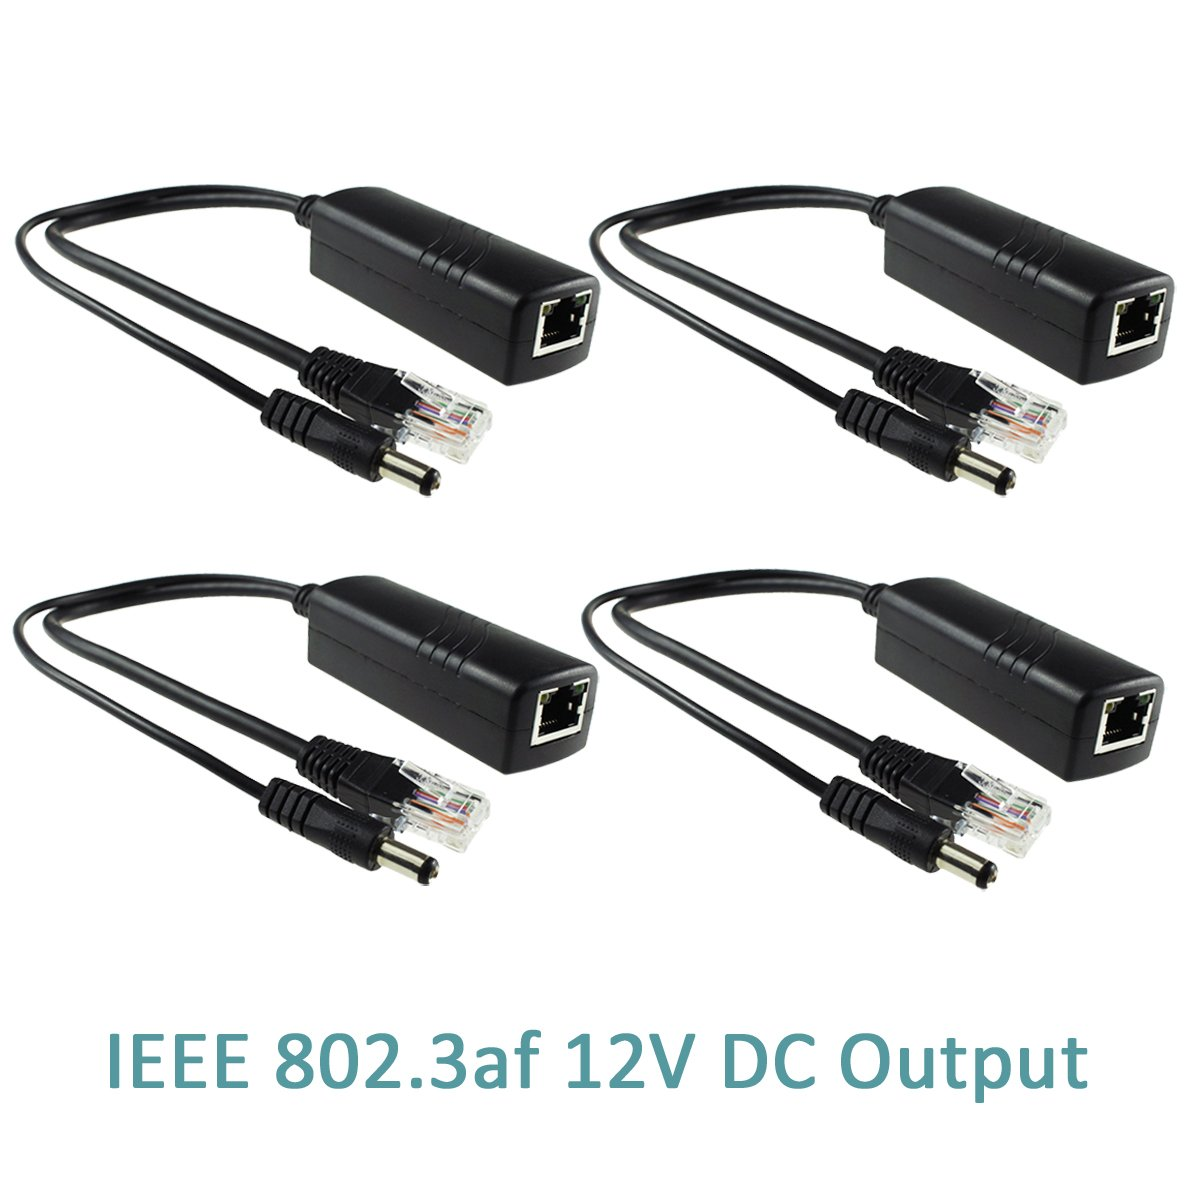 IEEE 802.3af Compliant 10//100Mbps for IP Camera AP Voip Phone and More ANVISION Active 48V to 12V Waterproof PoE Splitter Adapter White